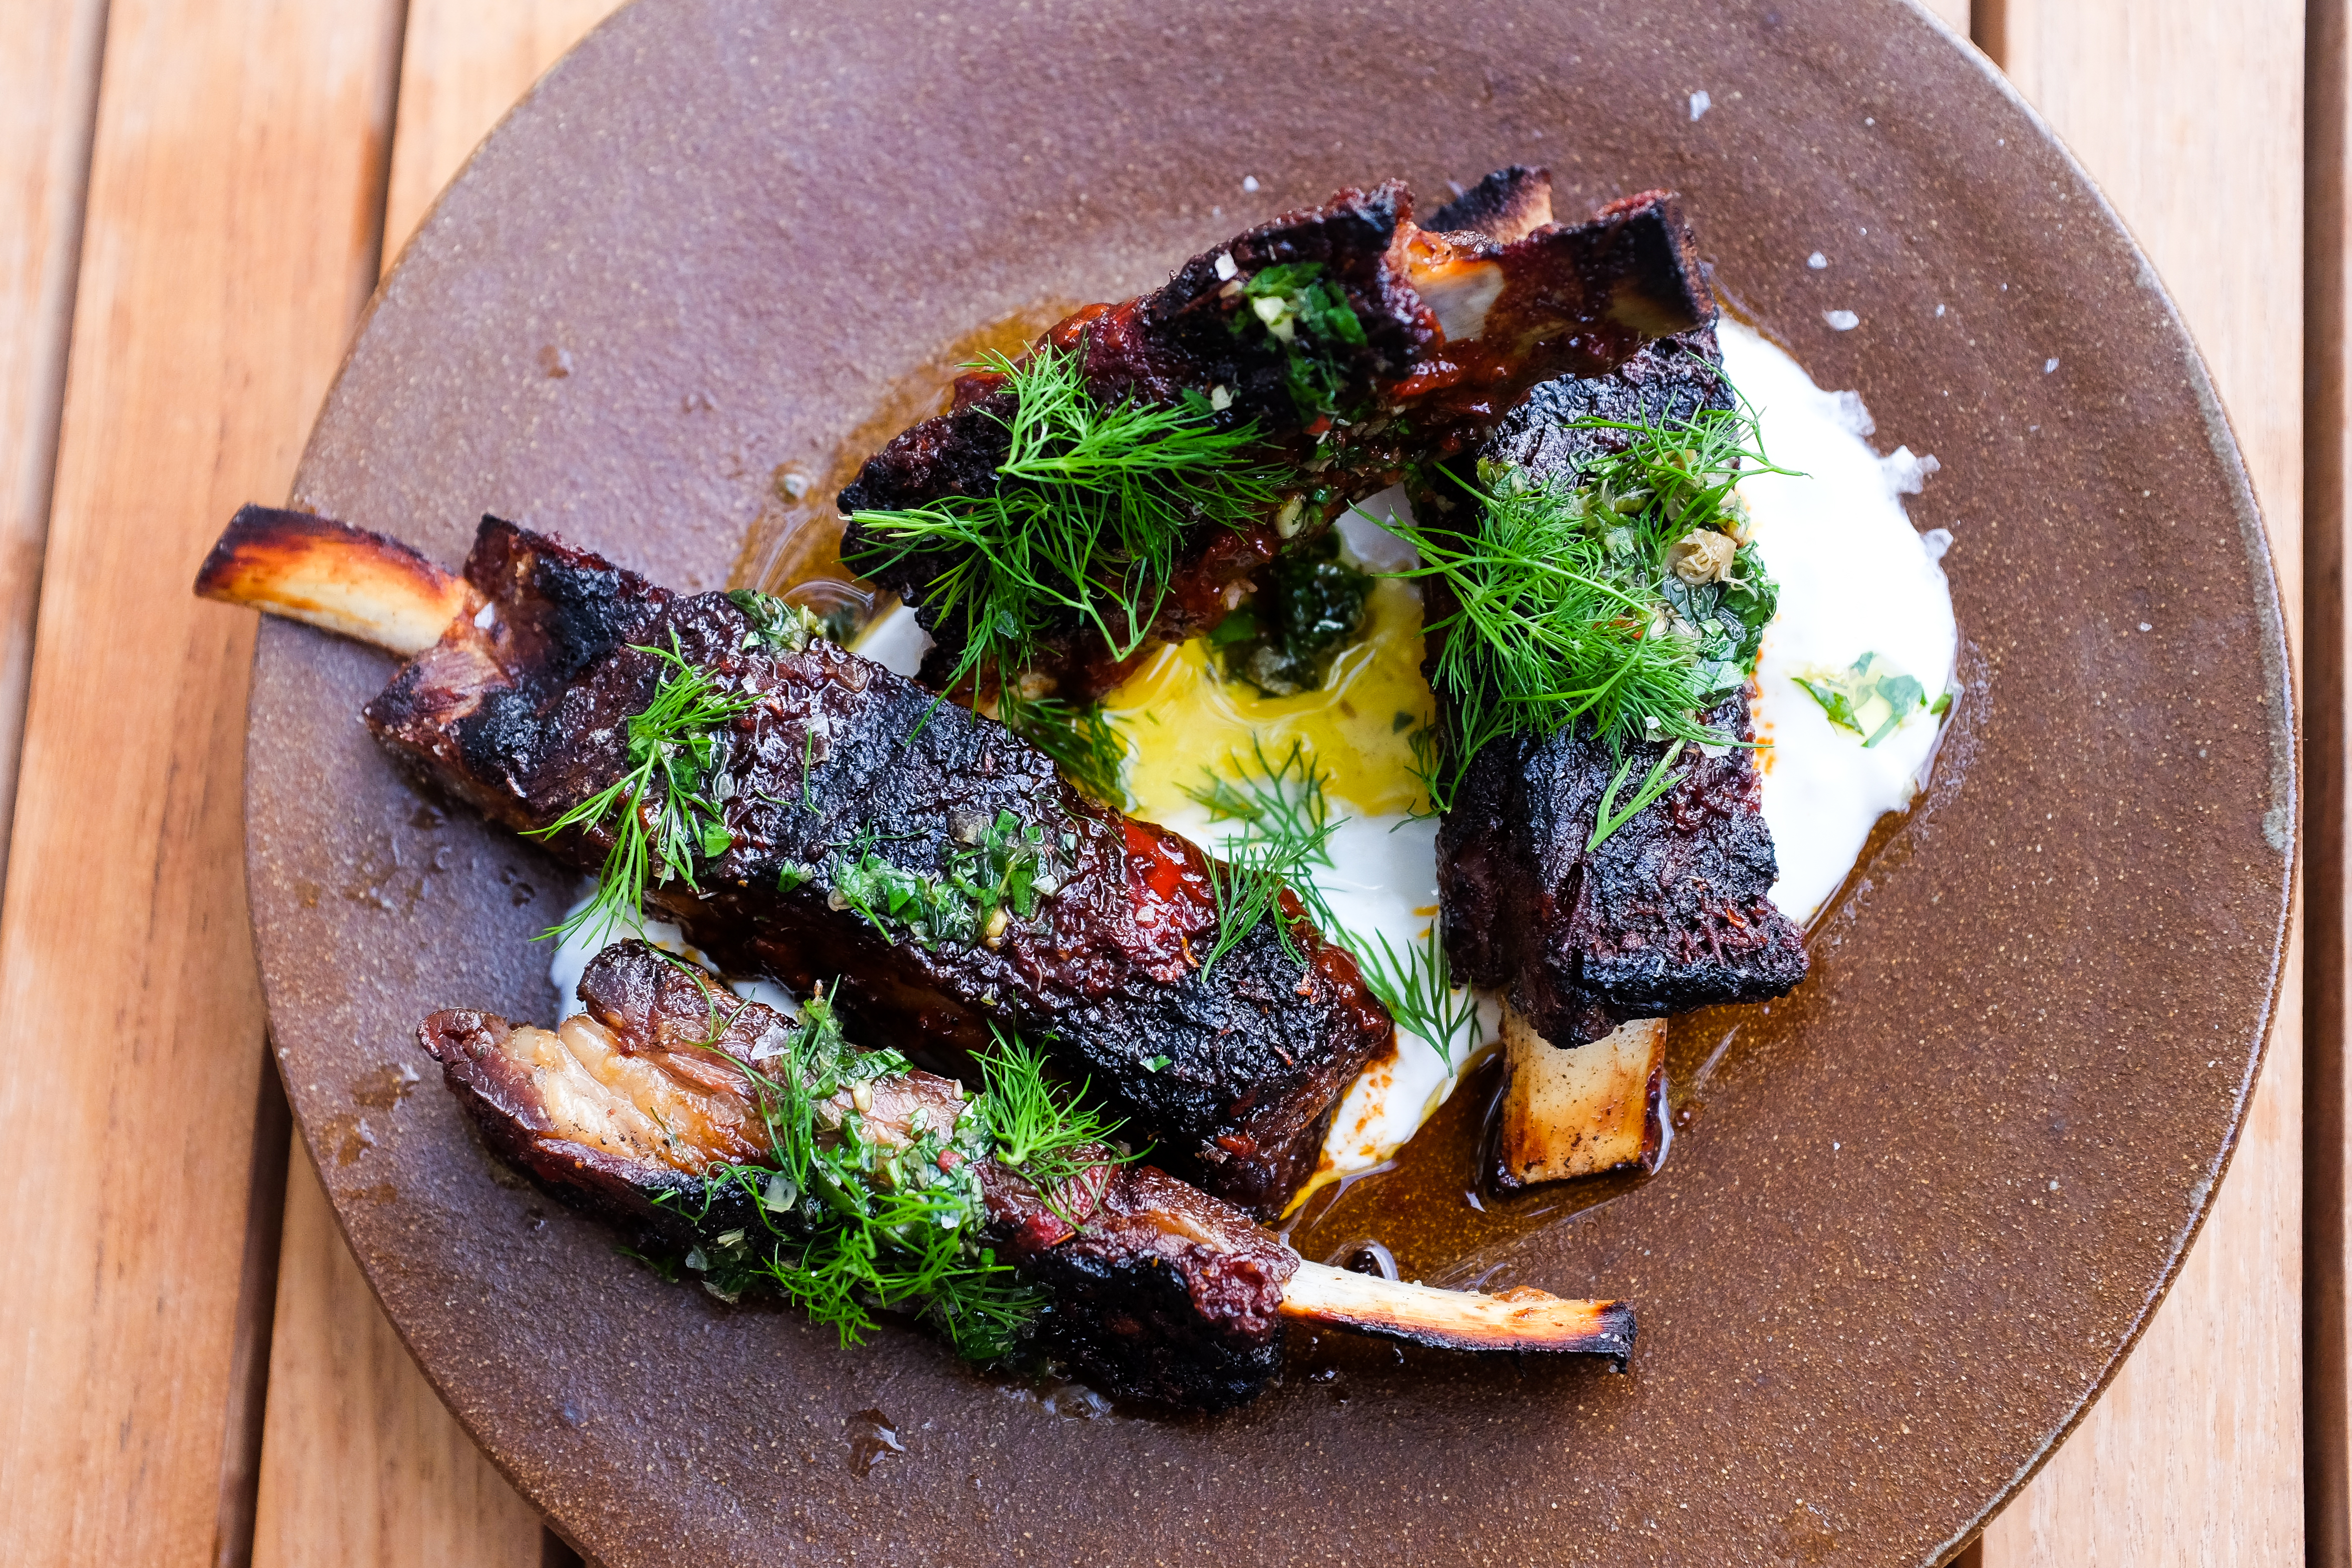 Four ribs on a brown stoneware plate on a bed of creamy yogurt with sprigs of bright green herbs on top.